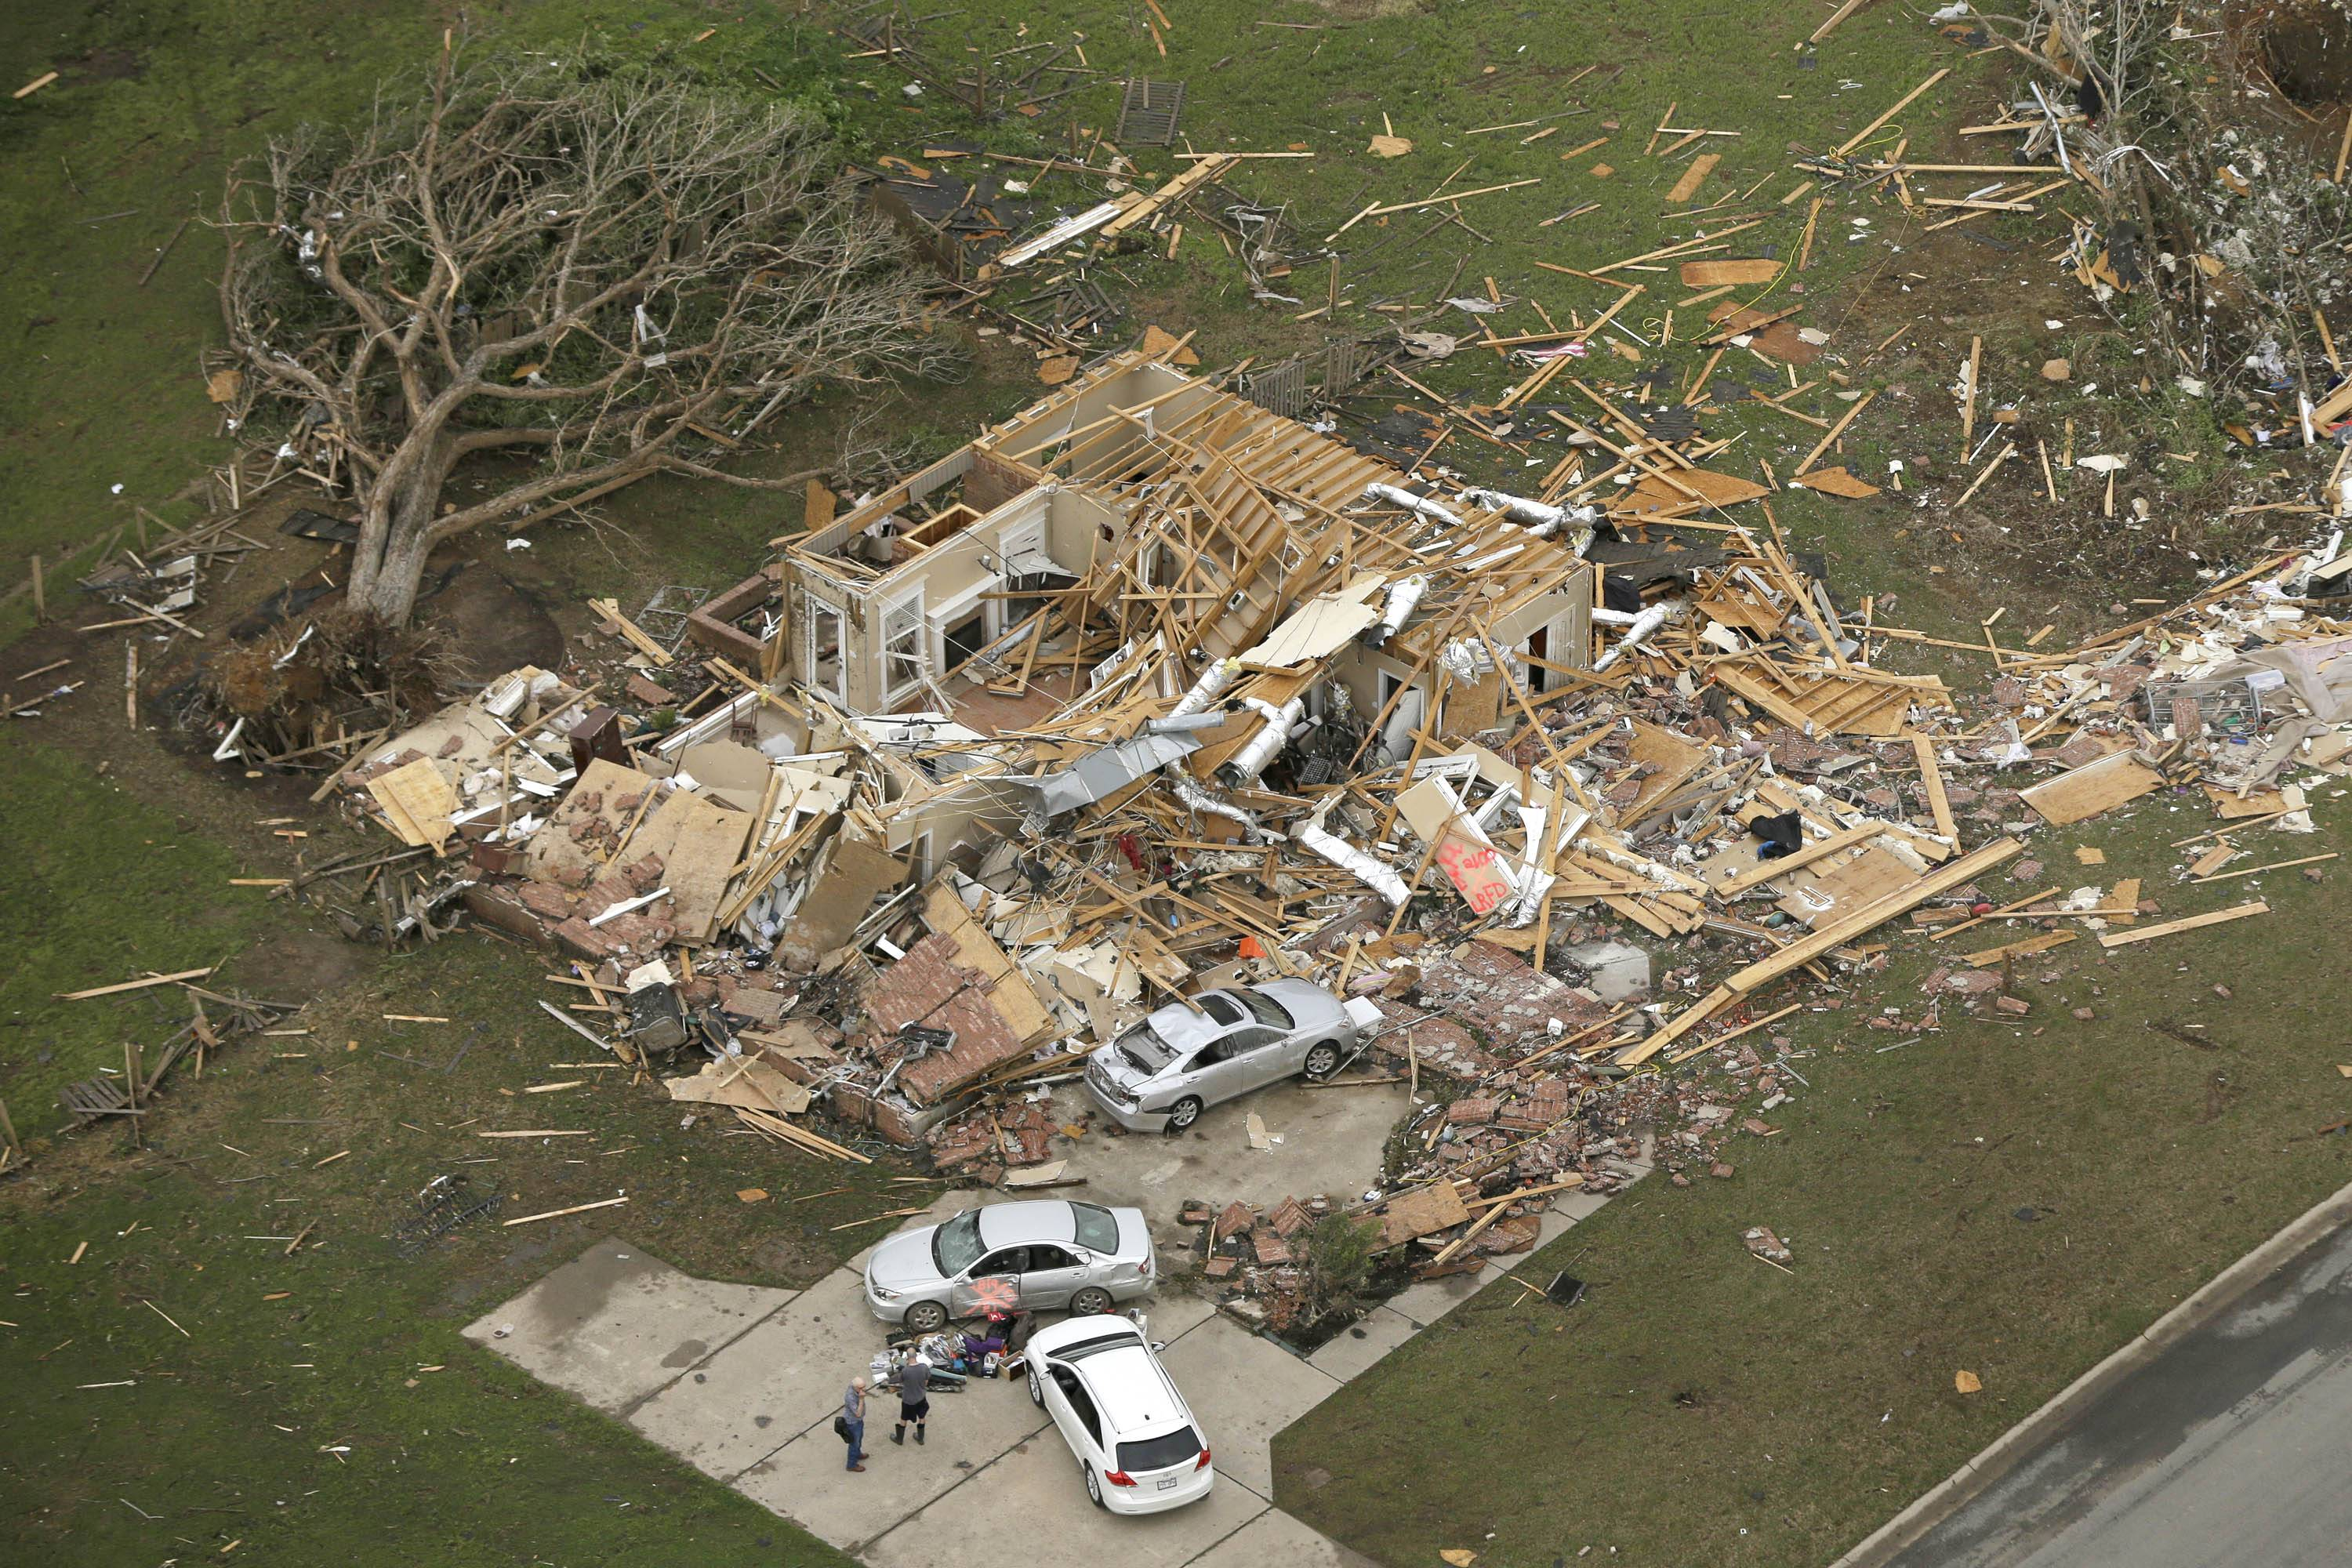 Two men stand in front of a destroyed house in Mayflower, Ark., Monday, April 28, 2014, after a tornado struck the town late Sunday. A tornado system ripped through several states in the central U.S. and left at least 17 dead in a violent start to this year's storm season, officials said.